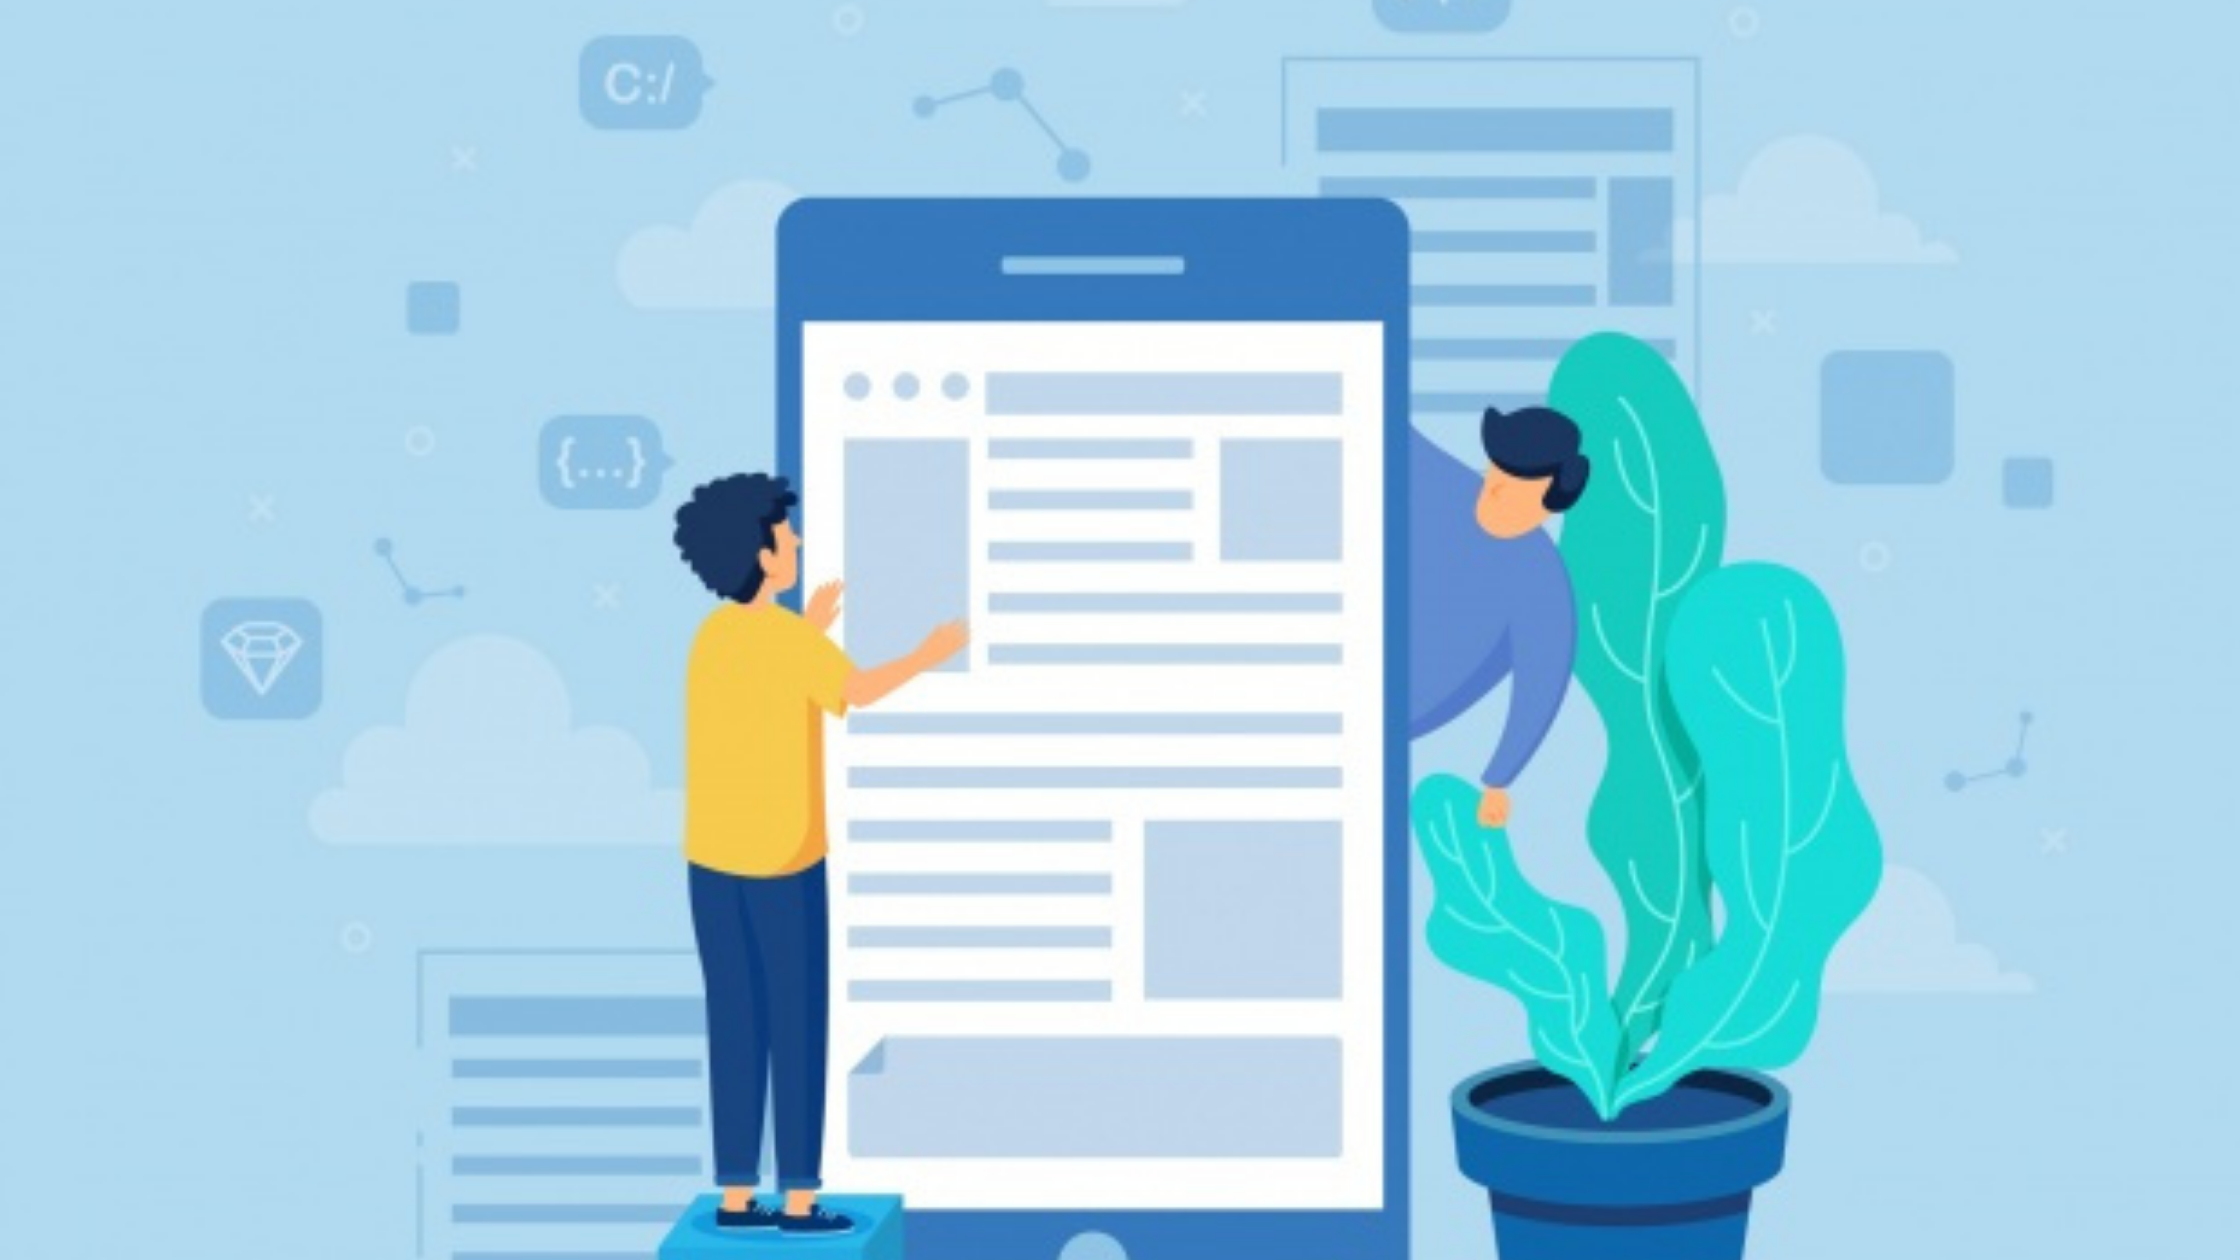 Best Mobile App UI Design Tips to Follow in 2020 & 2021